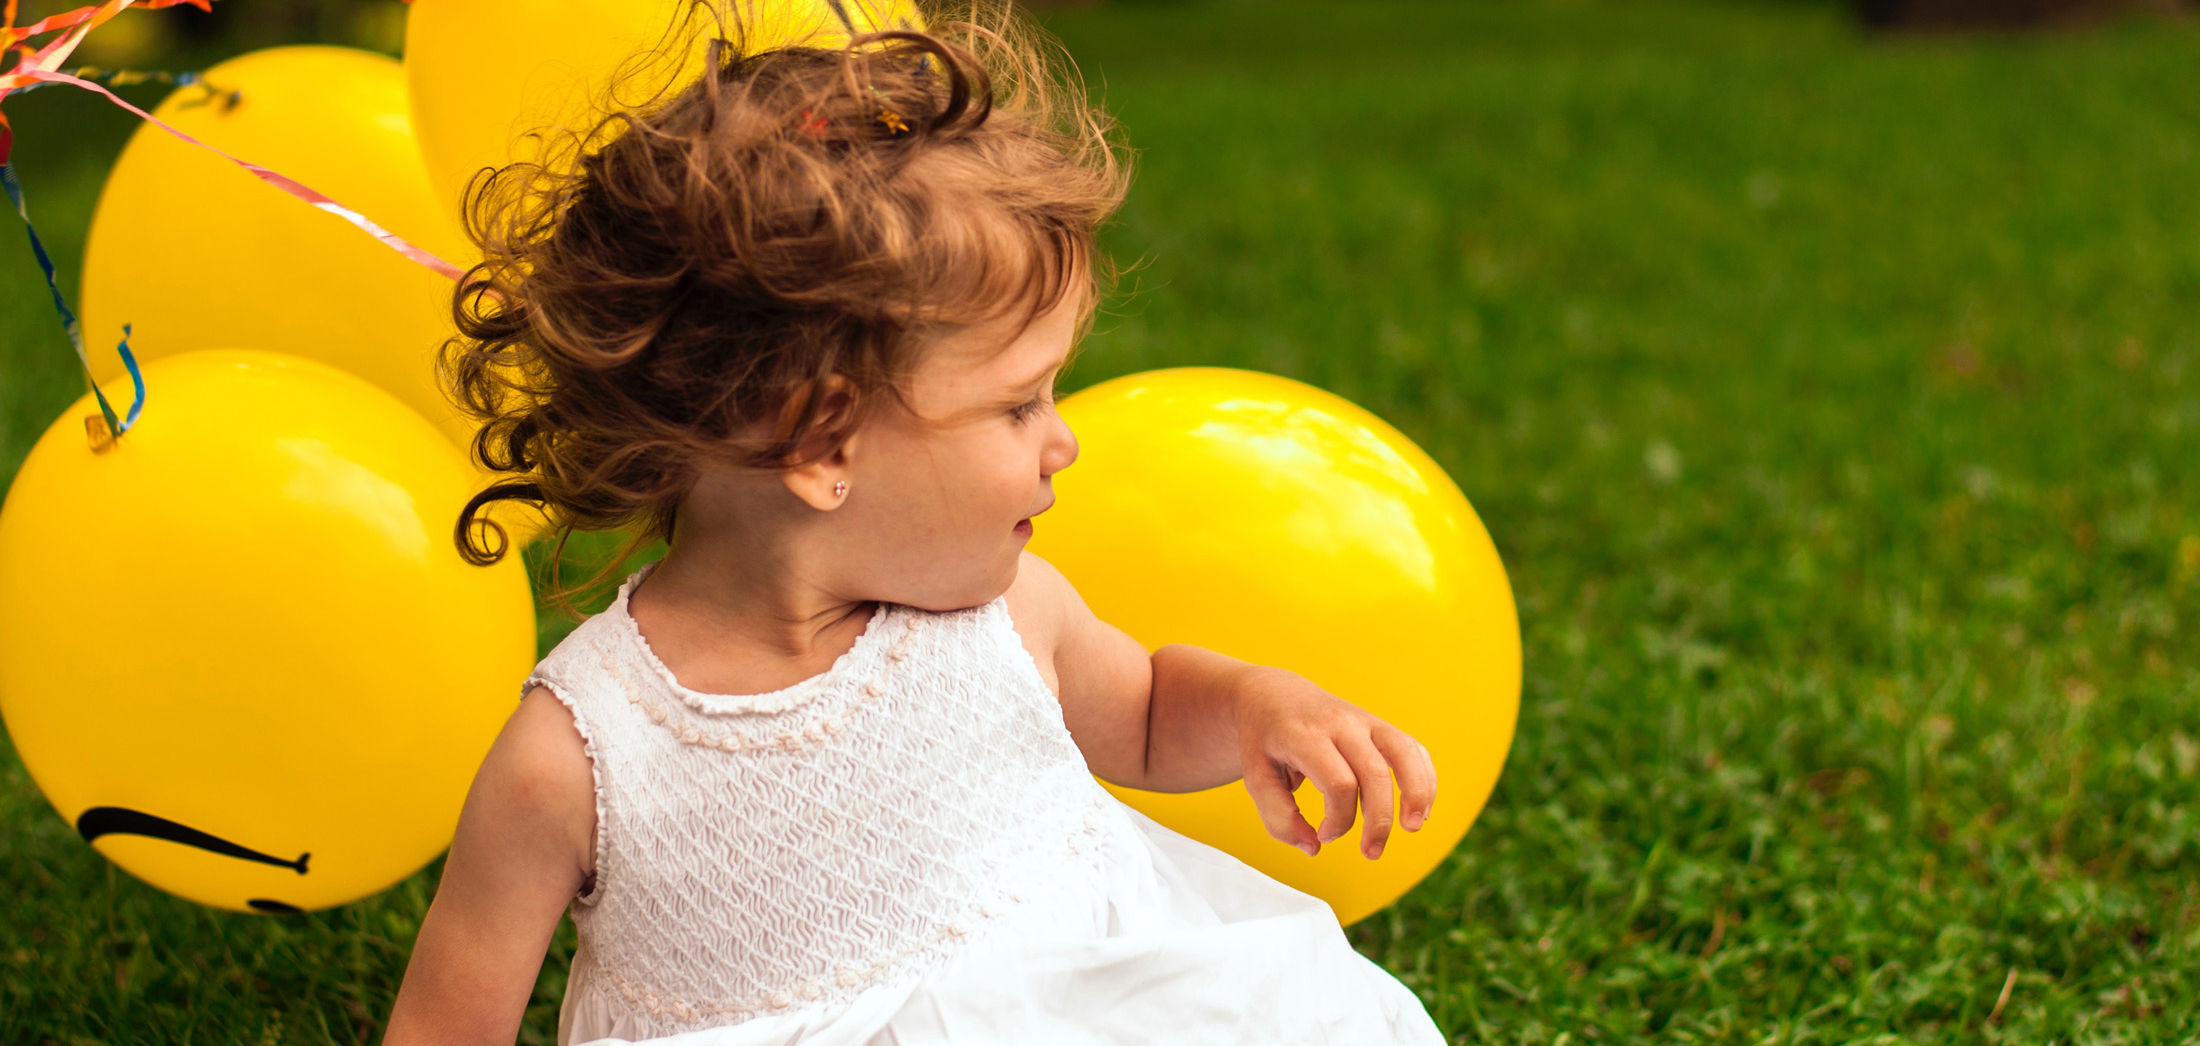 Does your brand need to 'grow up'?